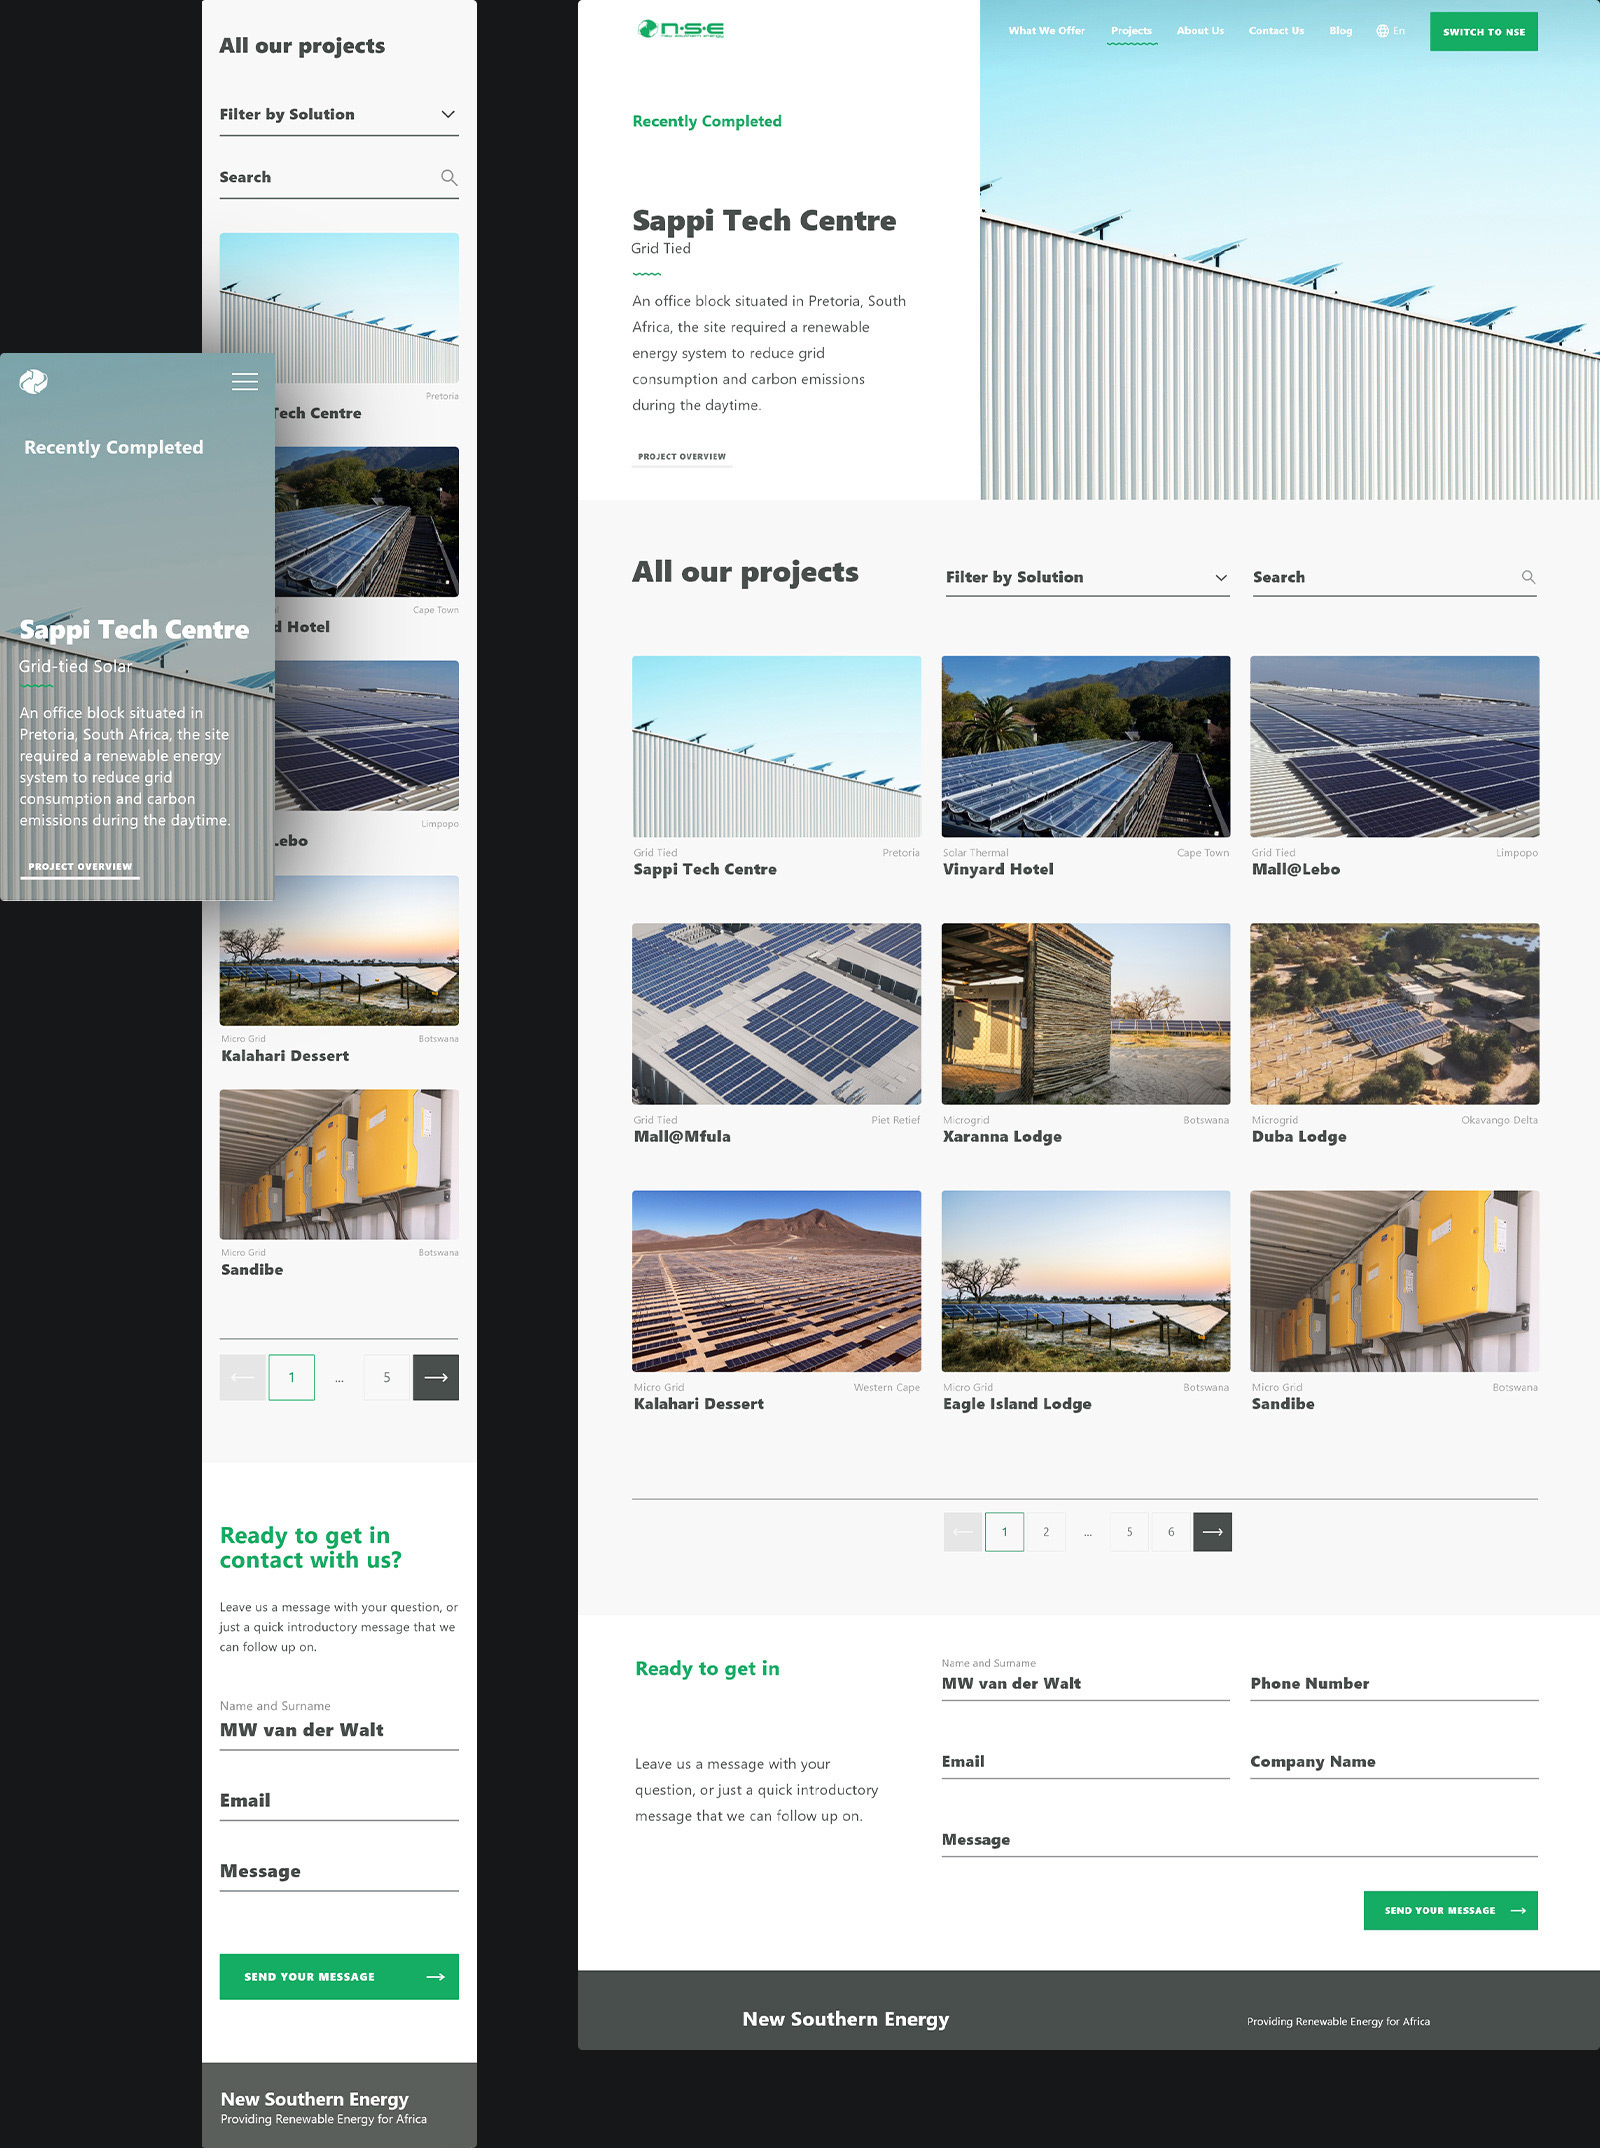 NSE_Projects_1600